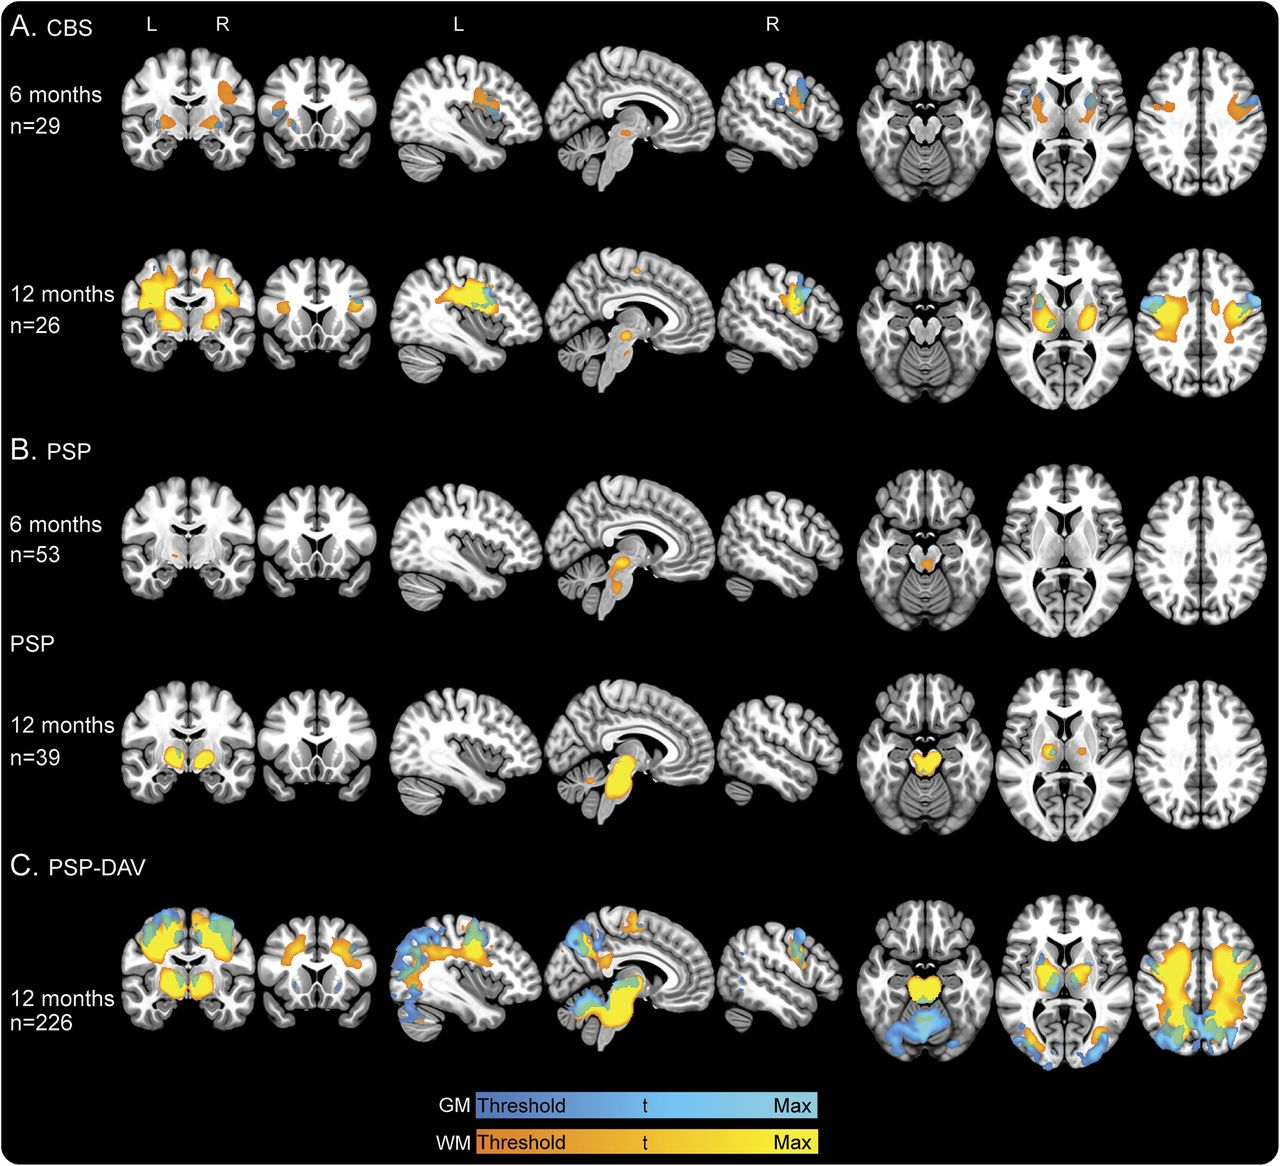 Progression of brain atrophy in PSP and CBS over 6 months